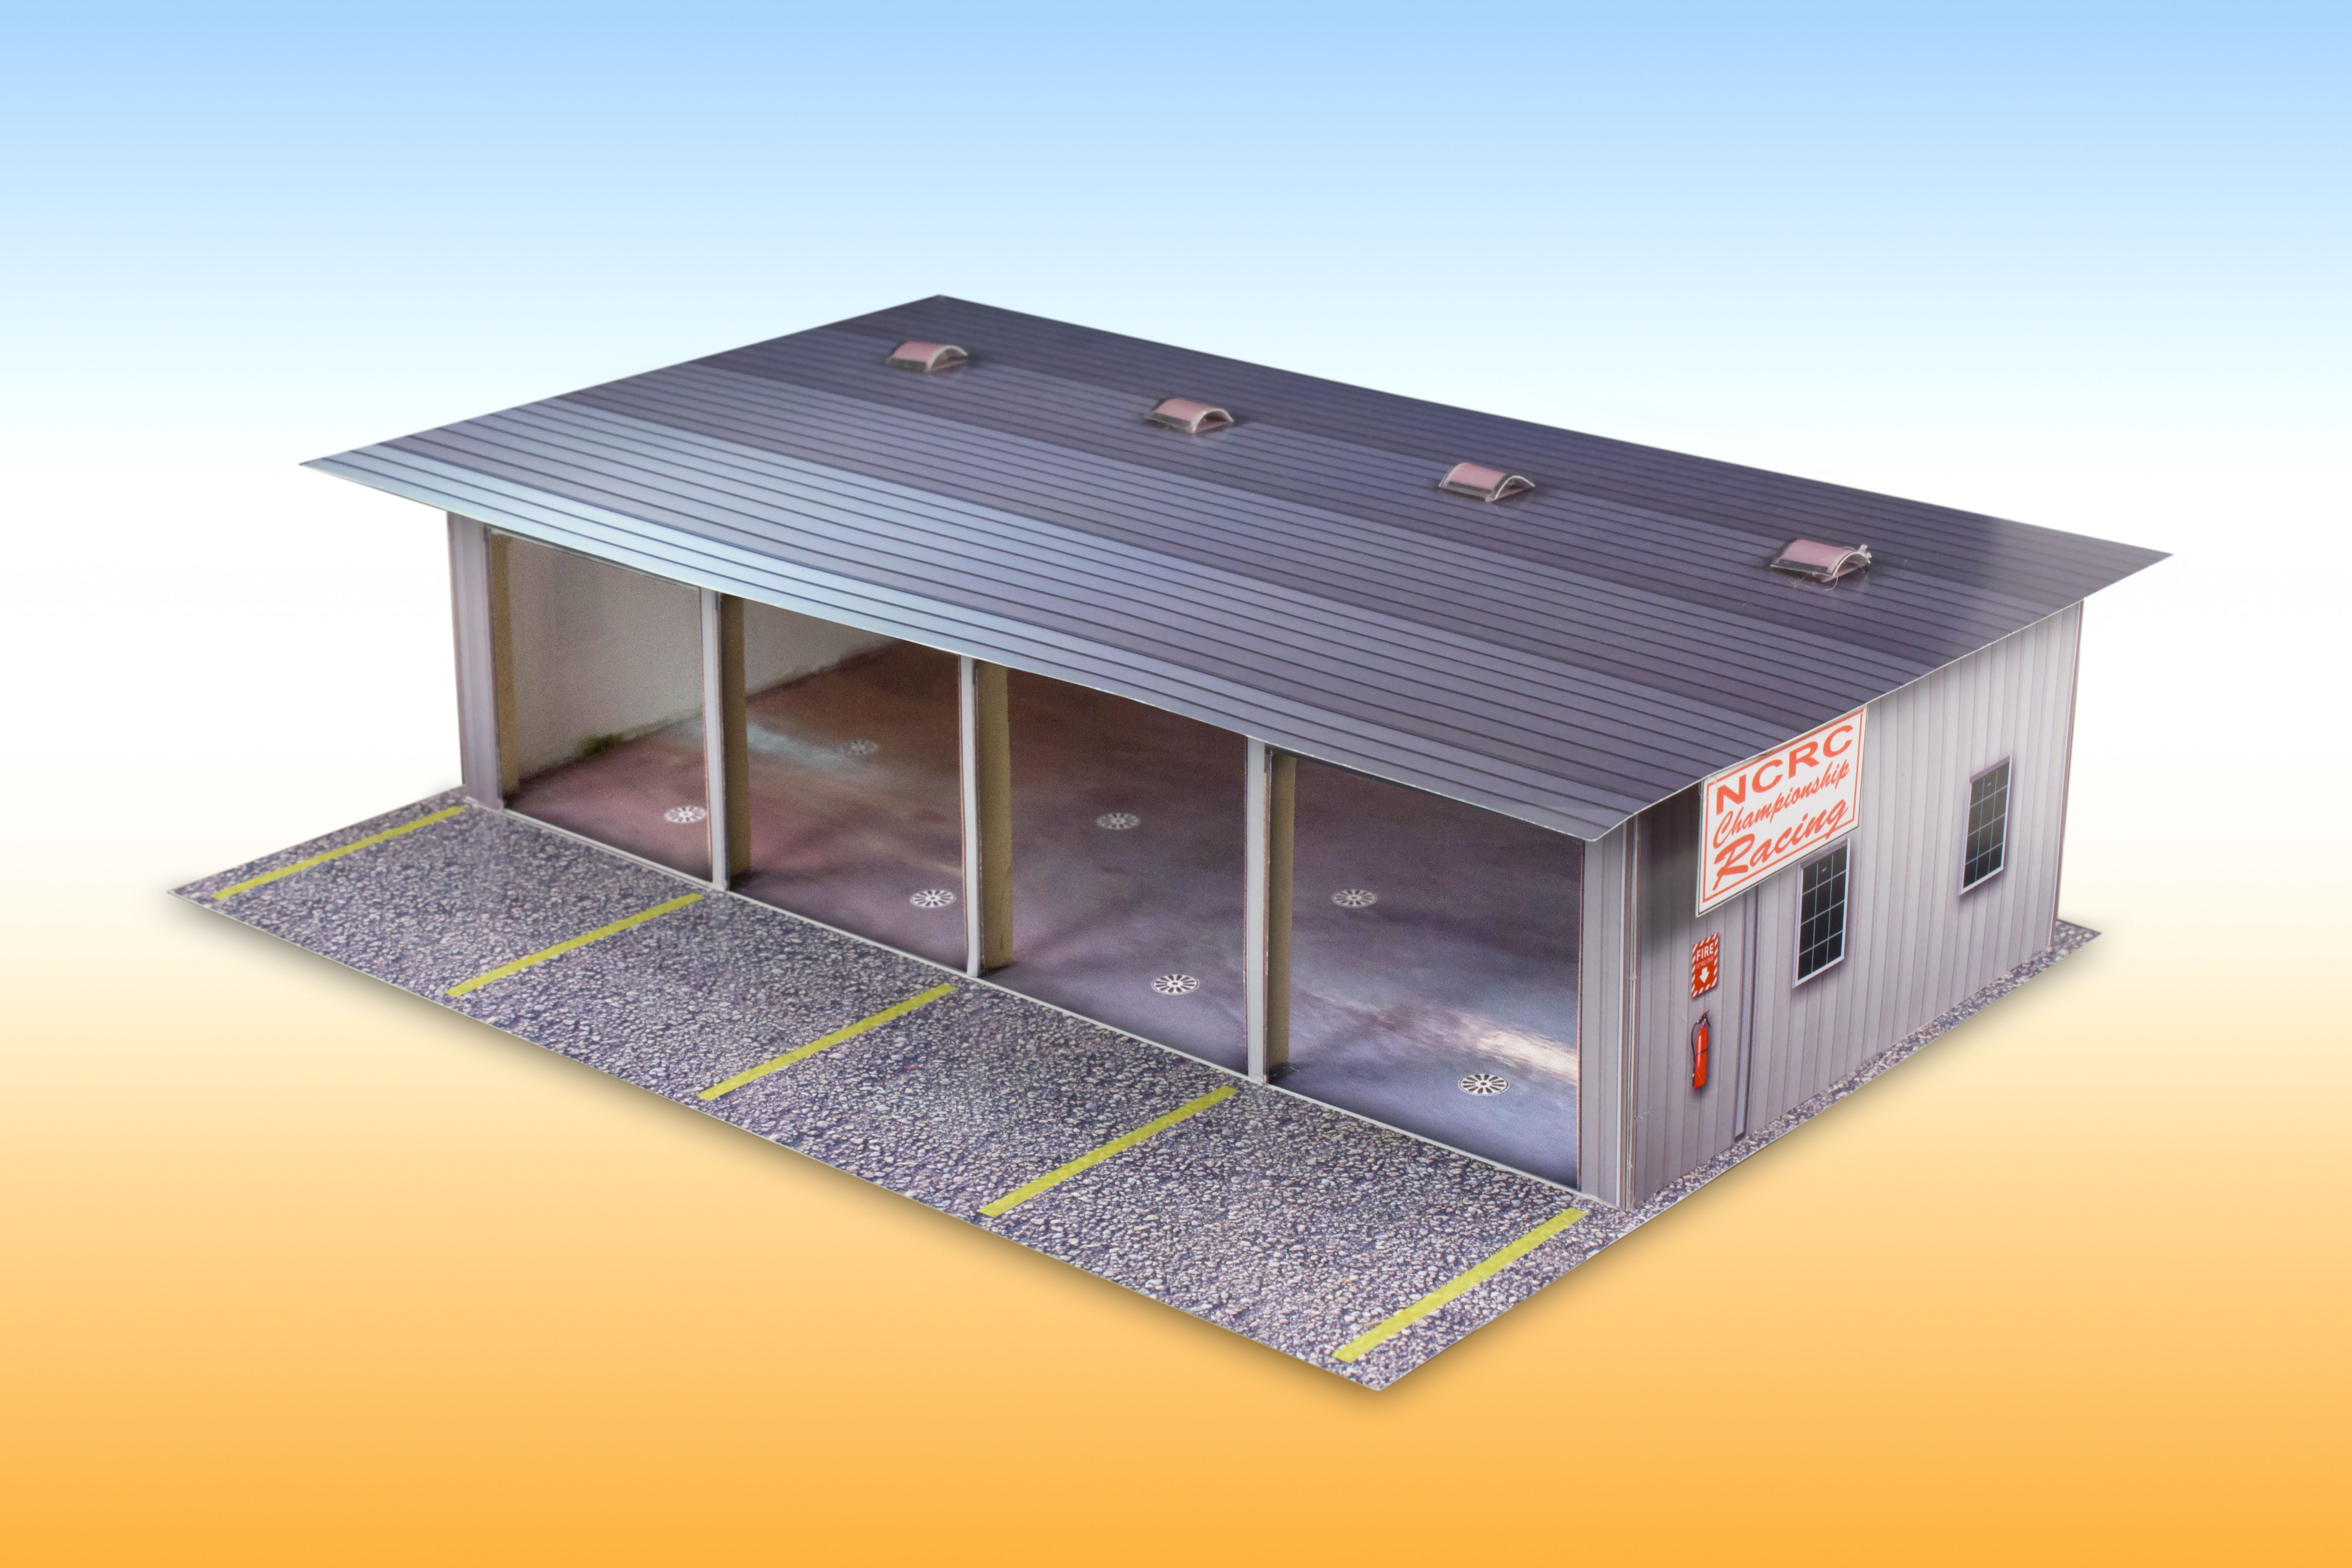 4 Stall Pit Garage Photo Real Scale Building Kit Is A Complete